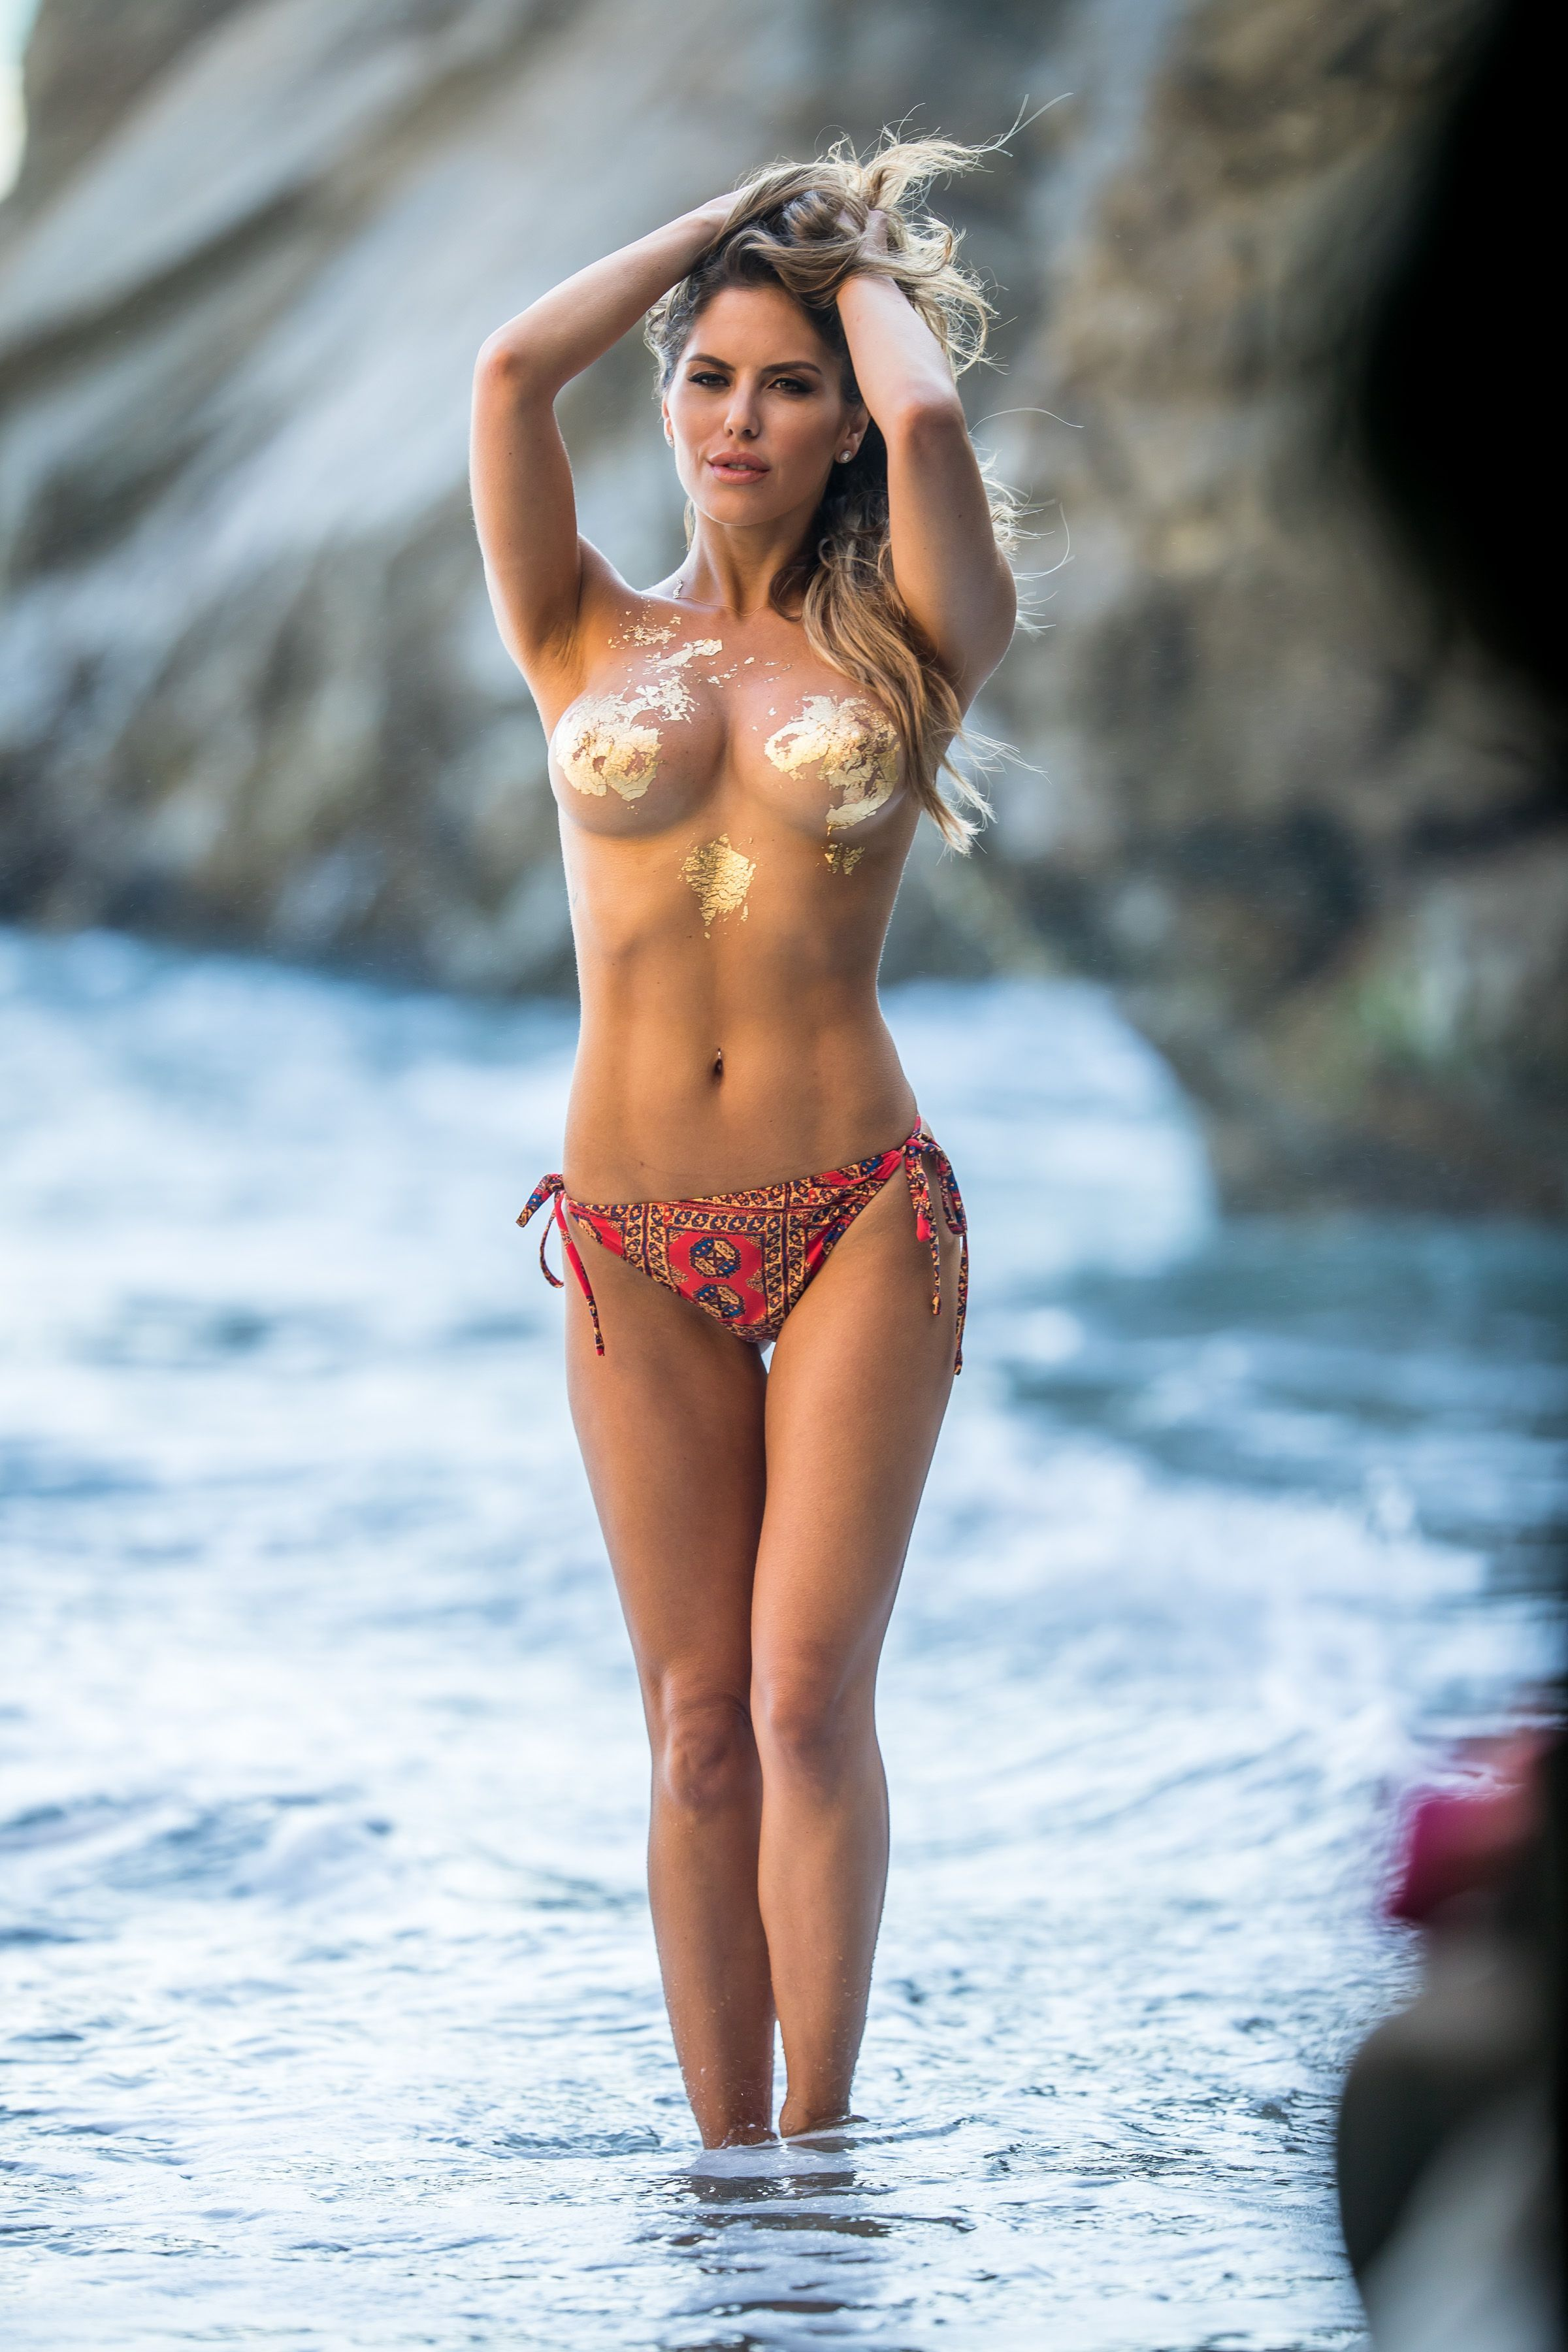 Brittney-Palmer-Sexy-Topless-4-thefappeningblog.com_.jpg